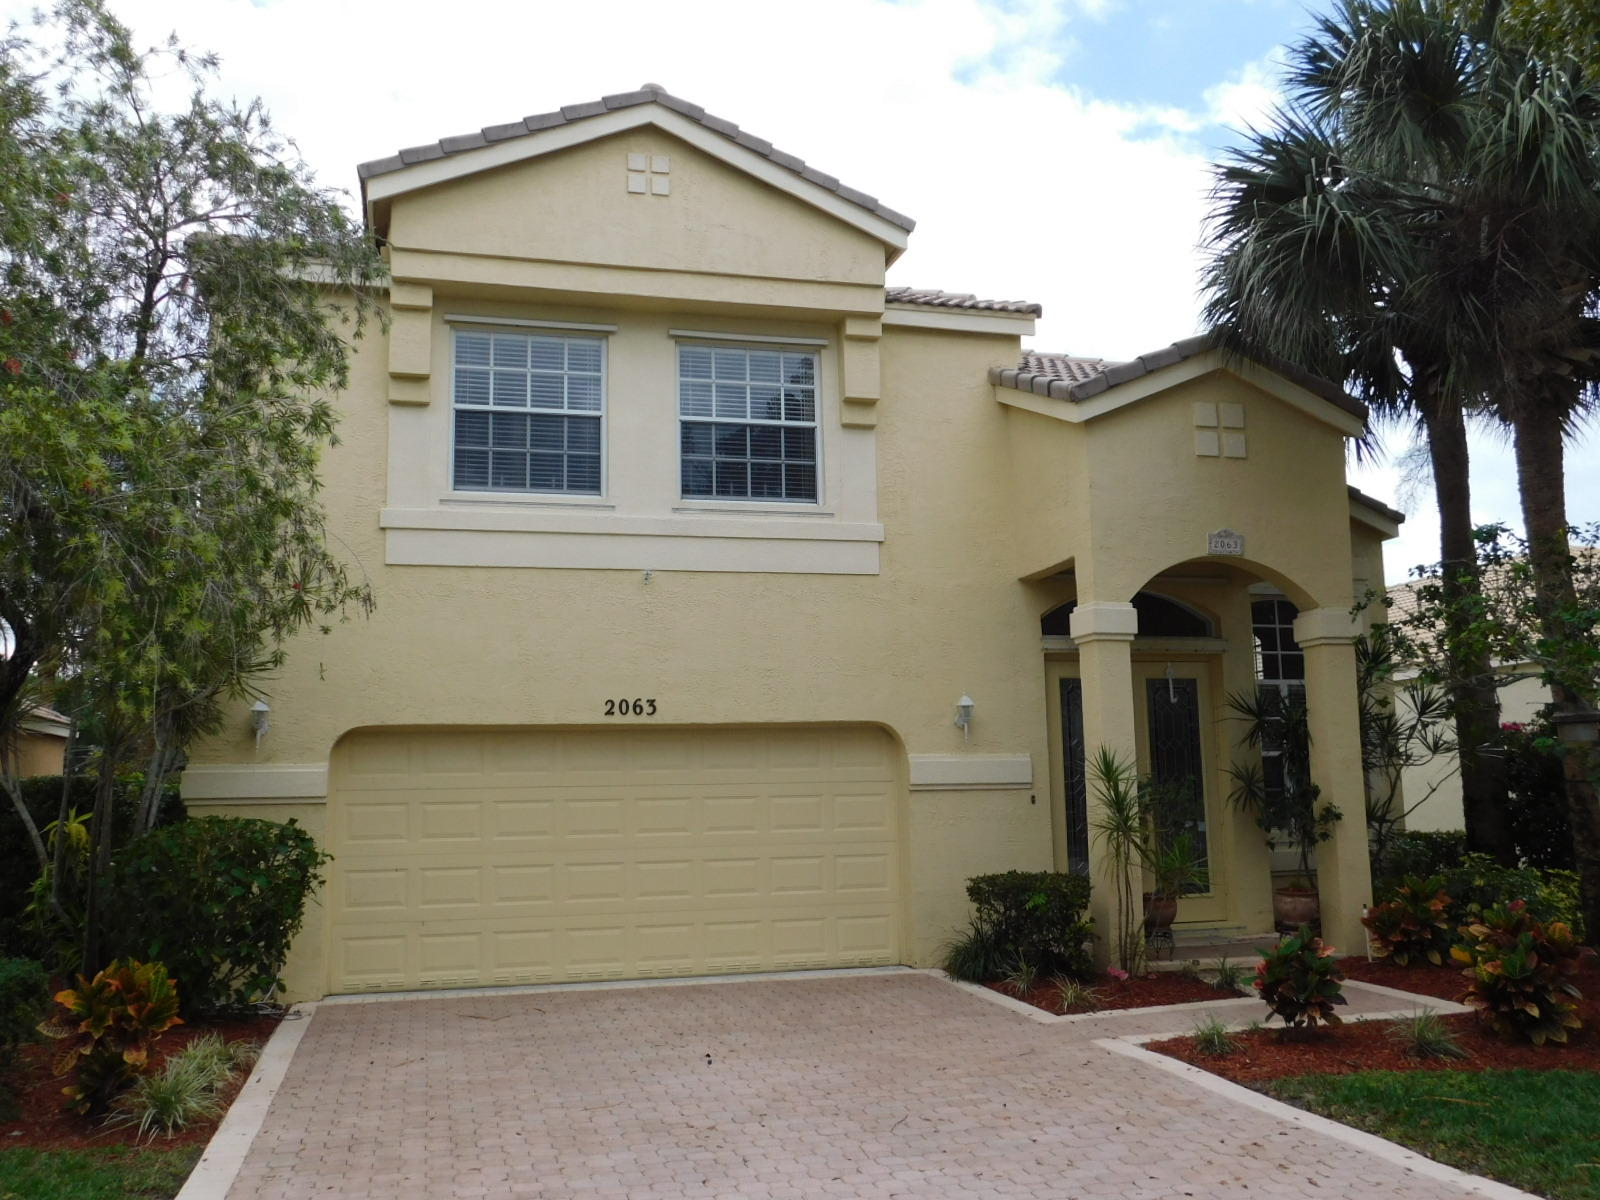 Home for sale in Royal Palm Beach Royal Palm Beach Florida